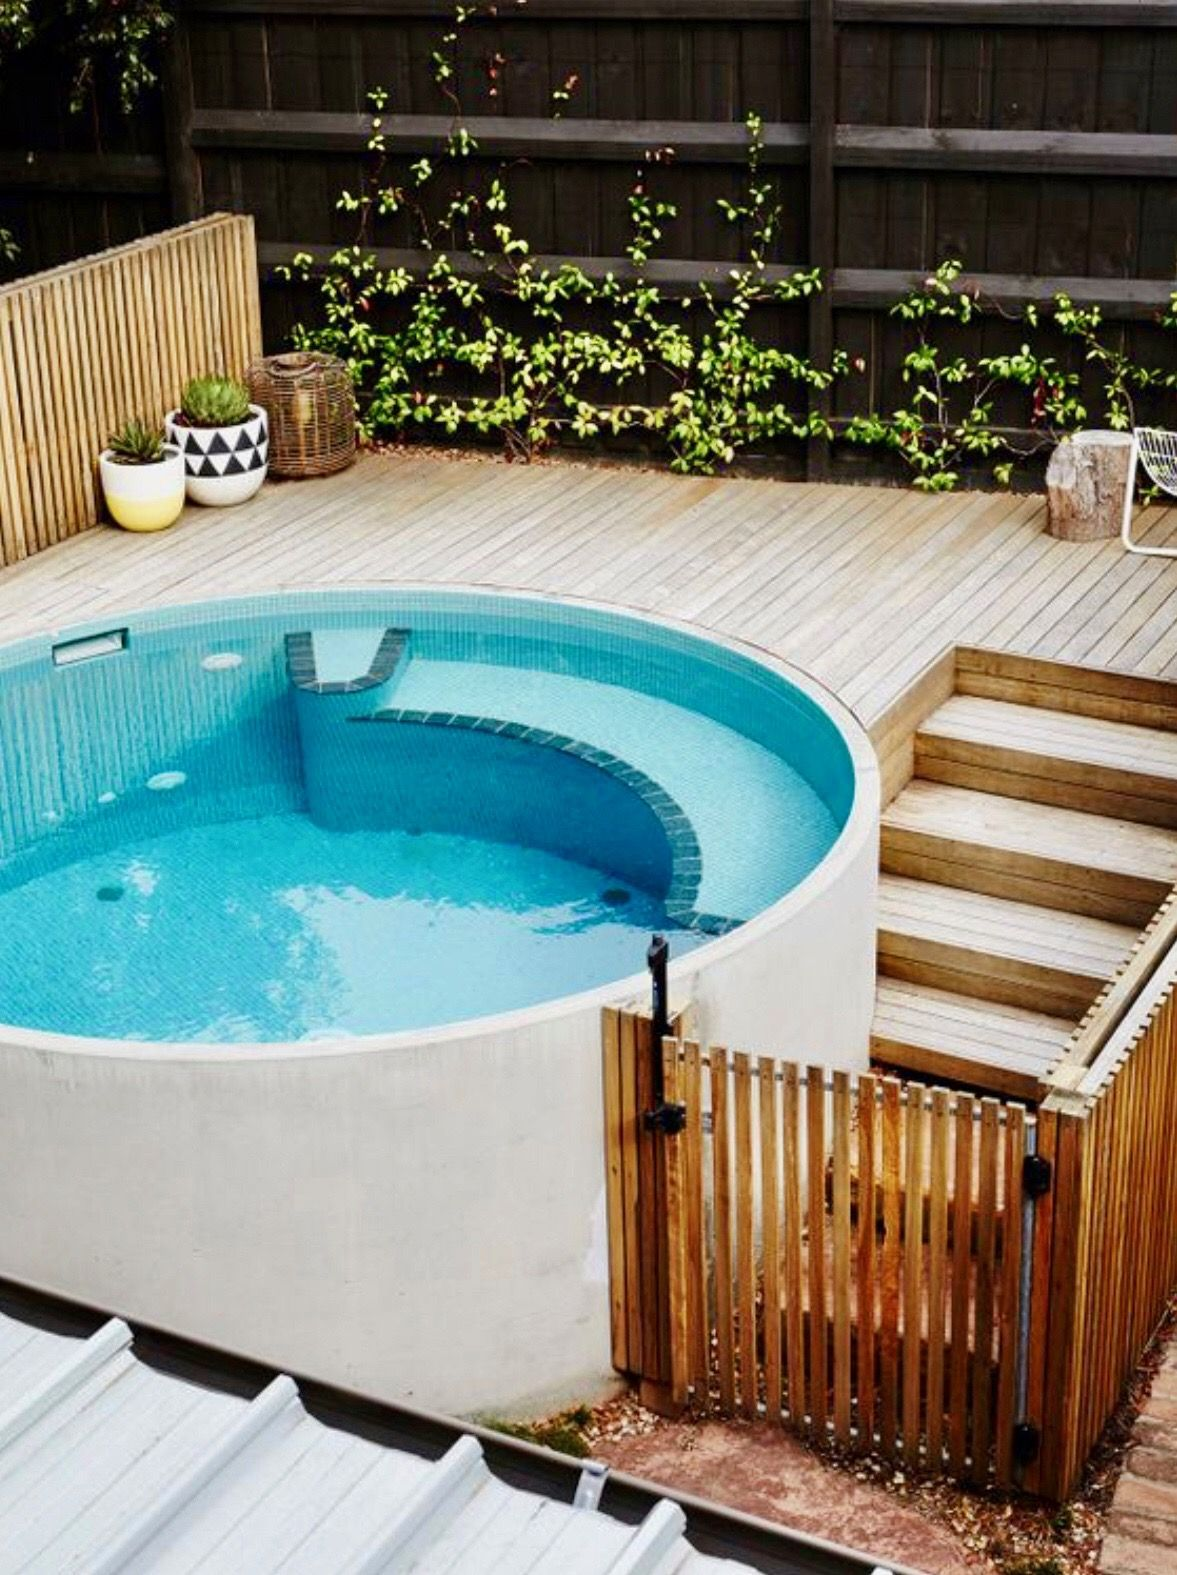 Plunge Pools Are The Trendy New That Being Installed In Many Peoples Back Yards They Small Deep Swimming To Refresh And Revive